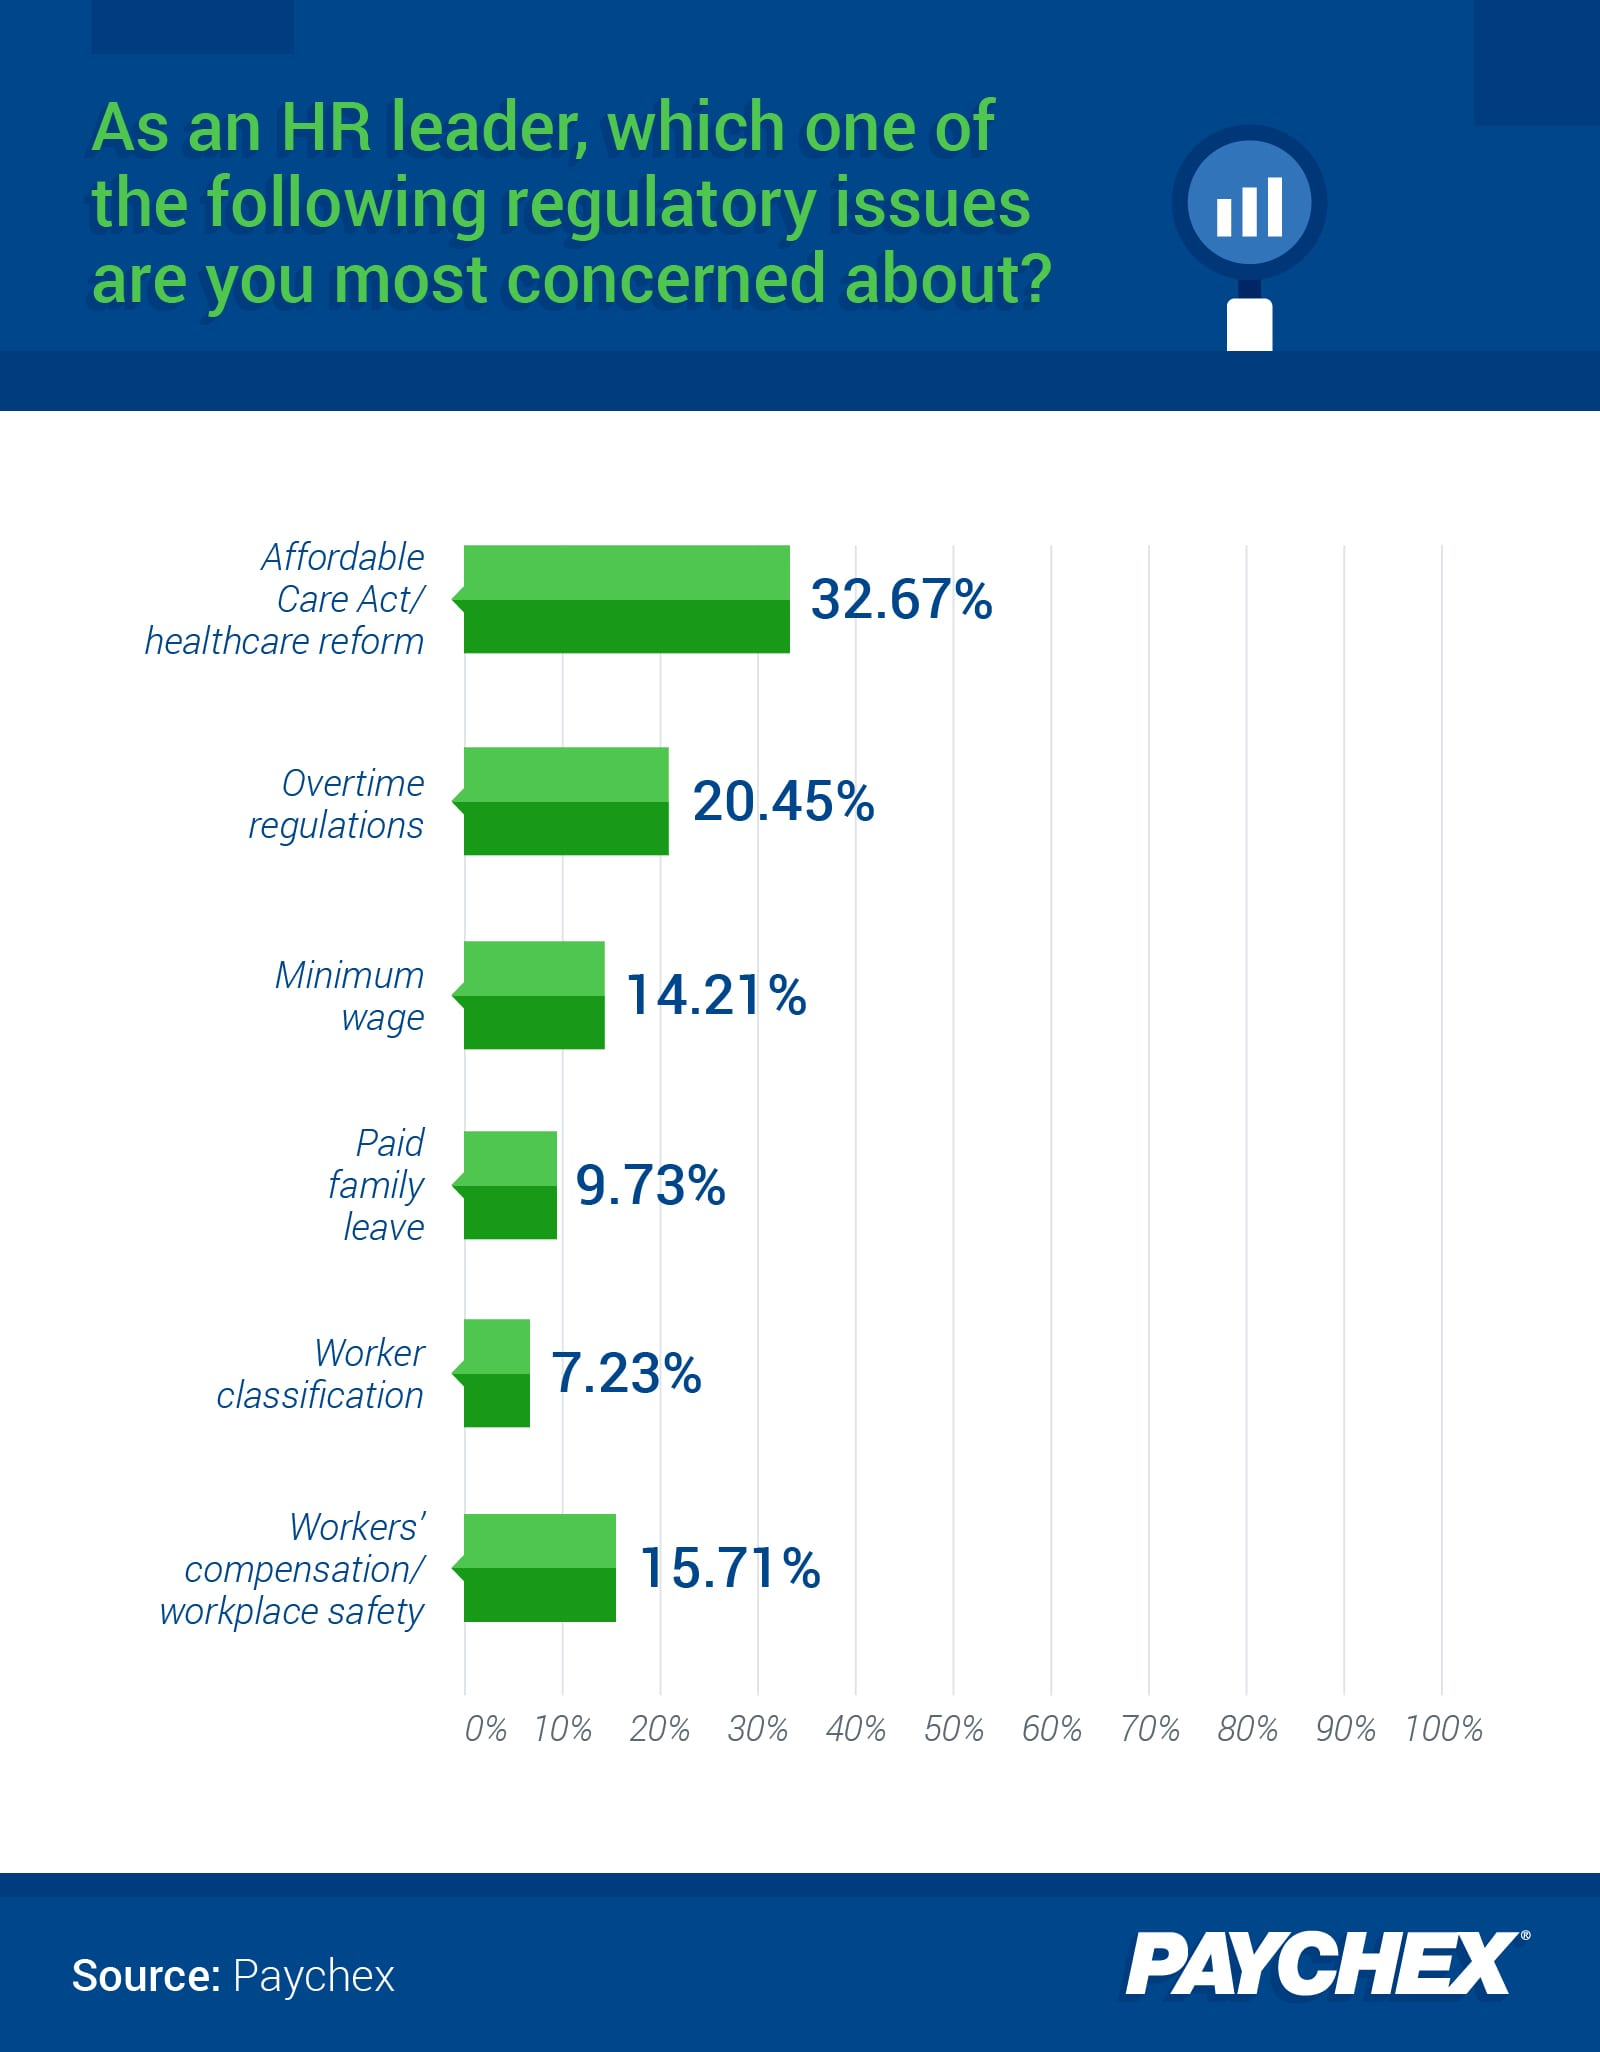 A chart showing which regulatory issue respondents were most concerned about.